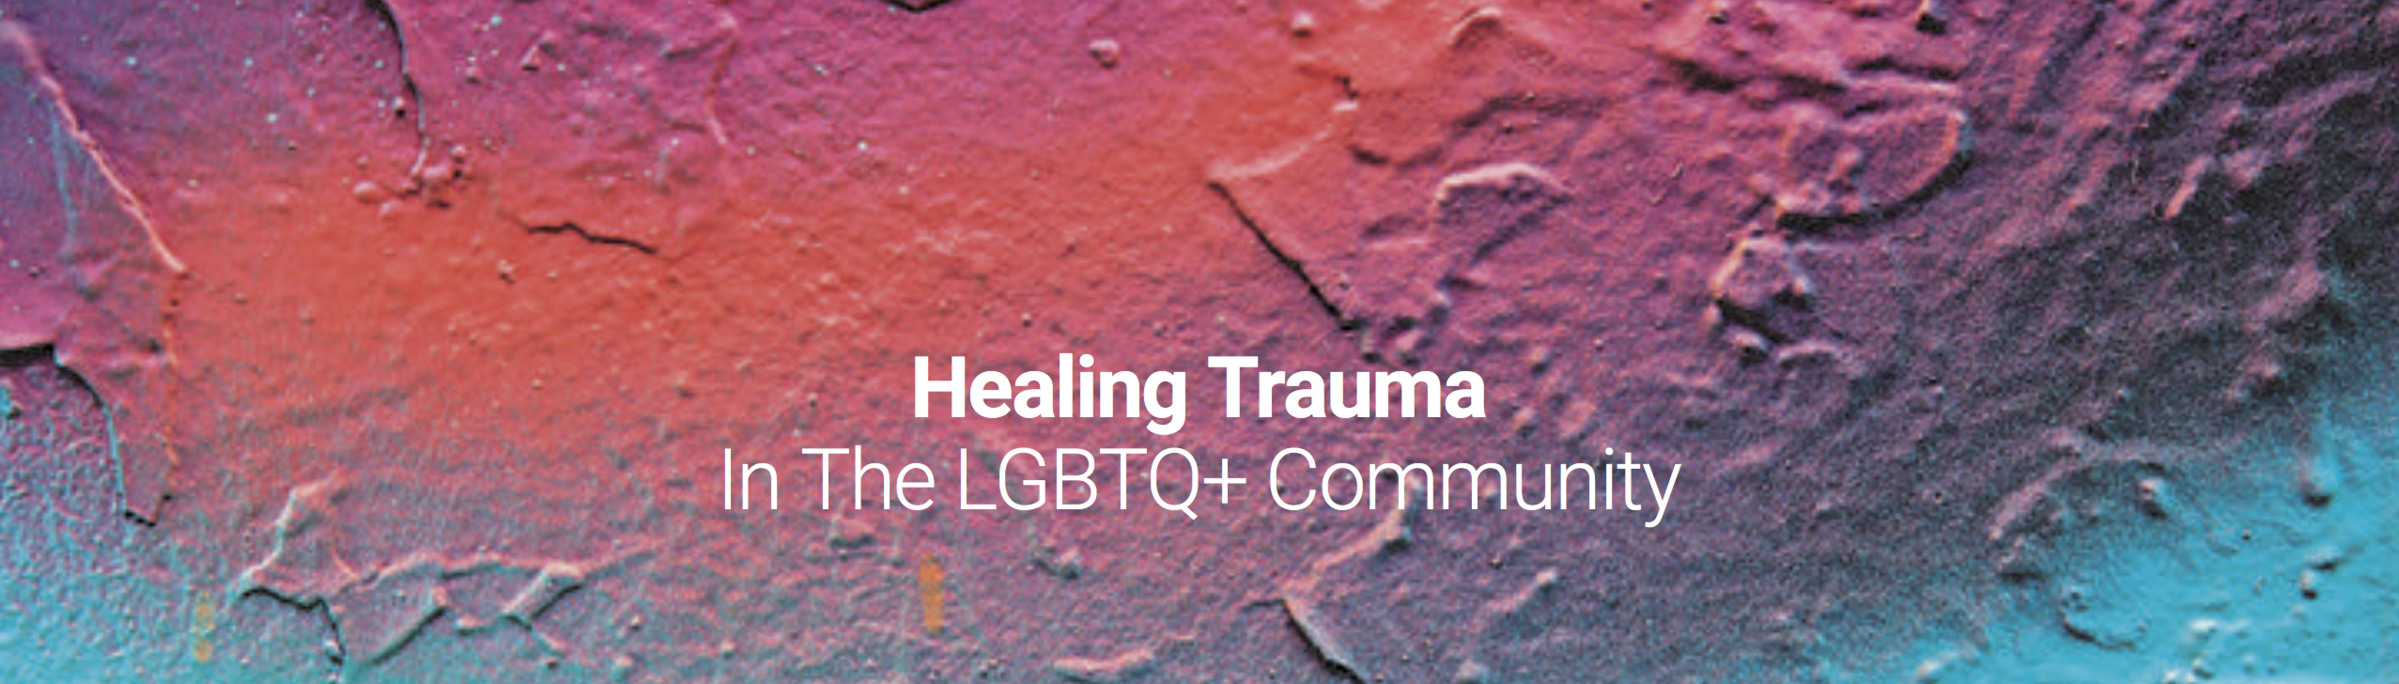 Healing Trauma In The LGBTQ+ Community